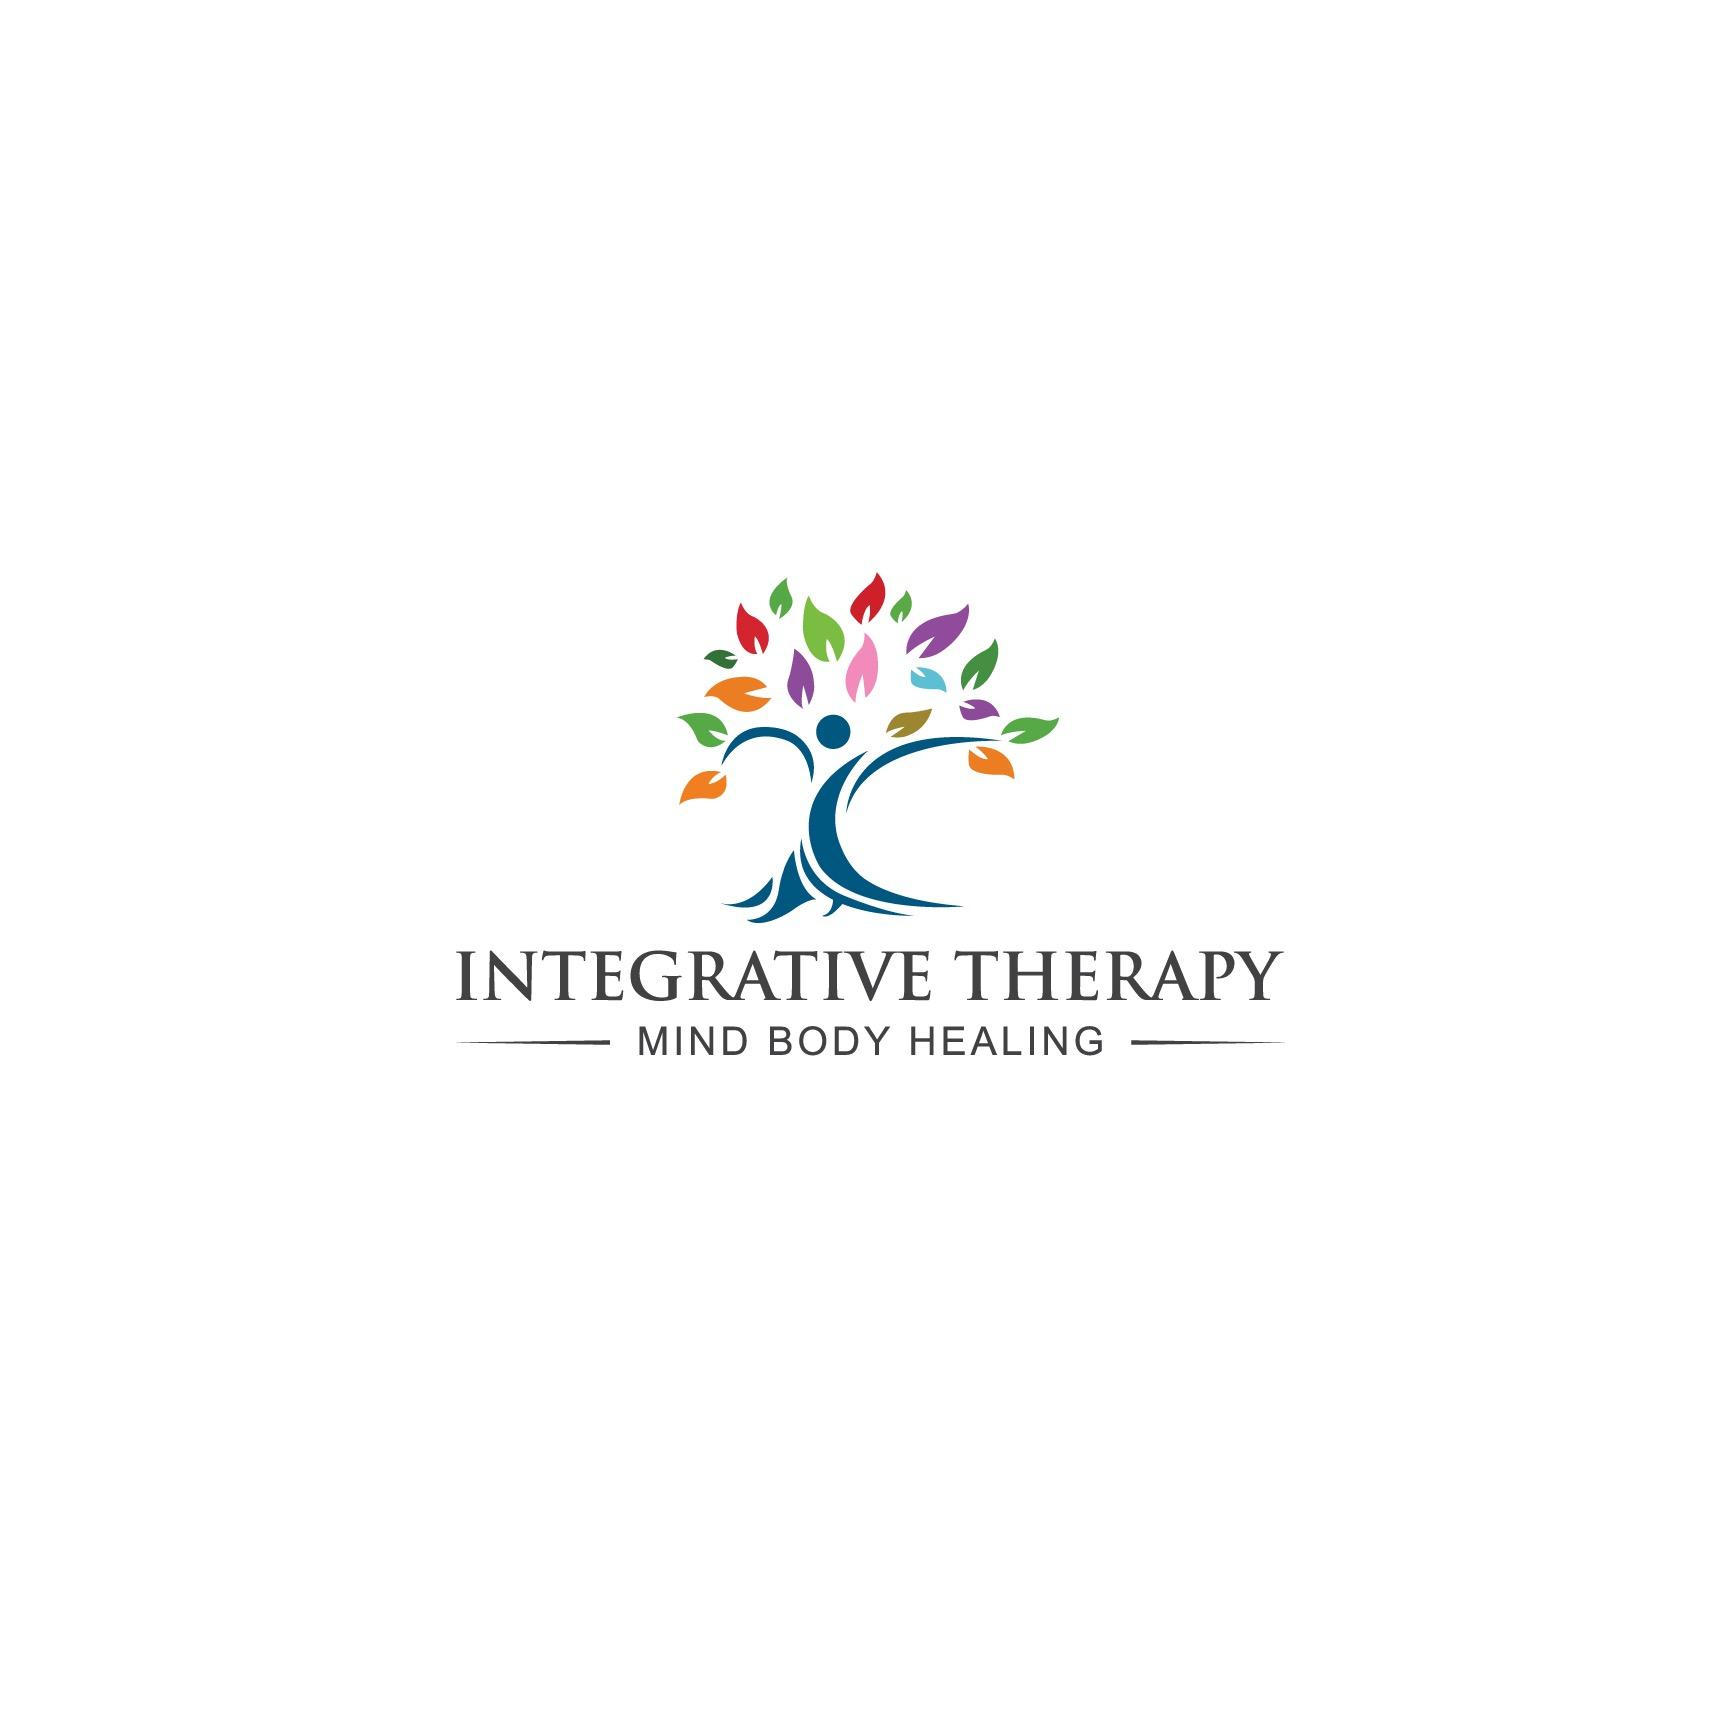 Integrative Therapy: Mind Body Healing LLC